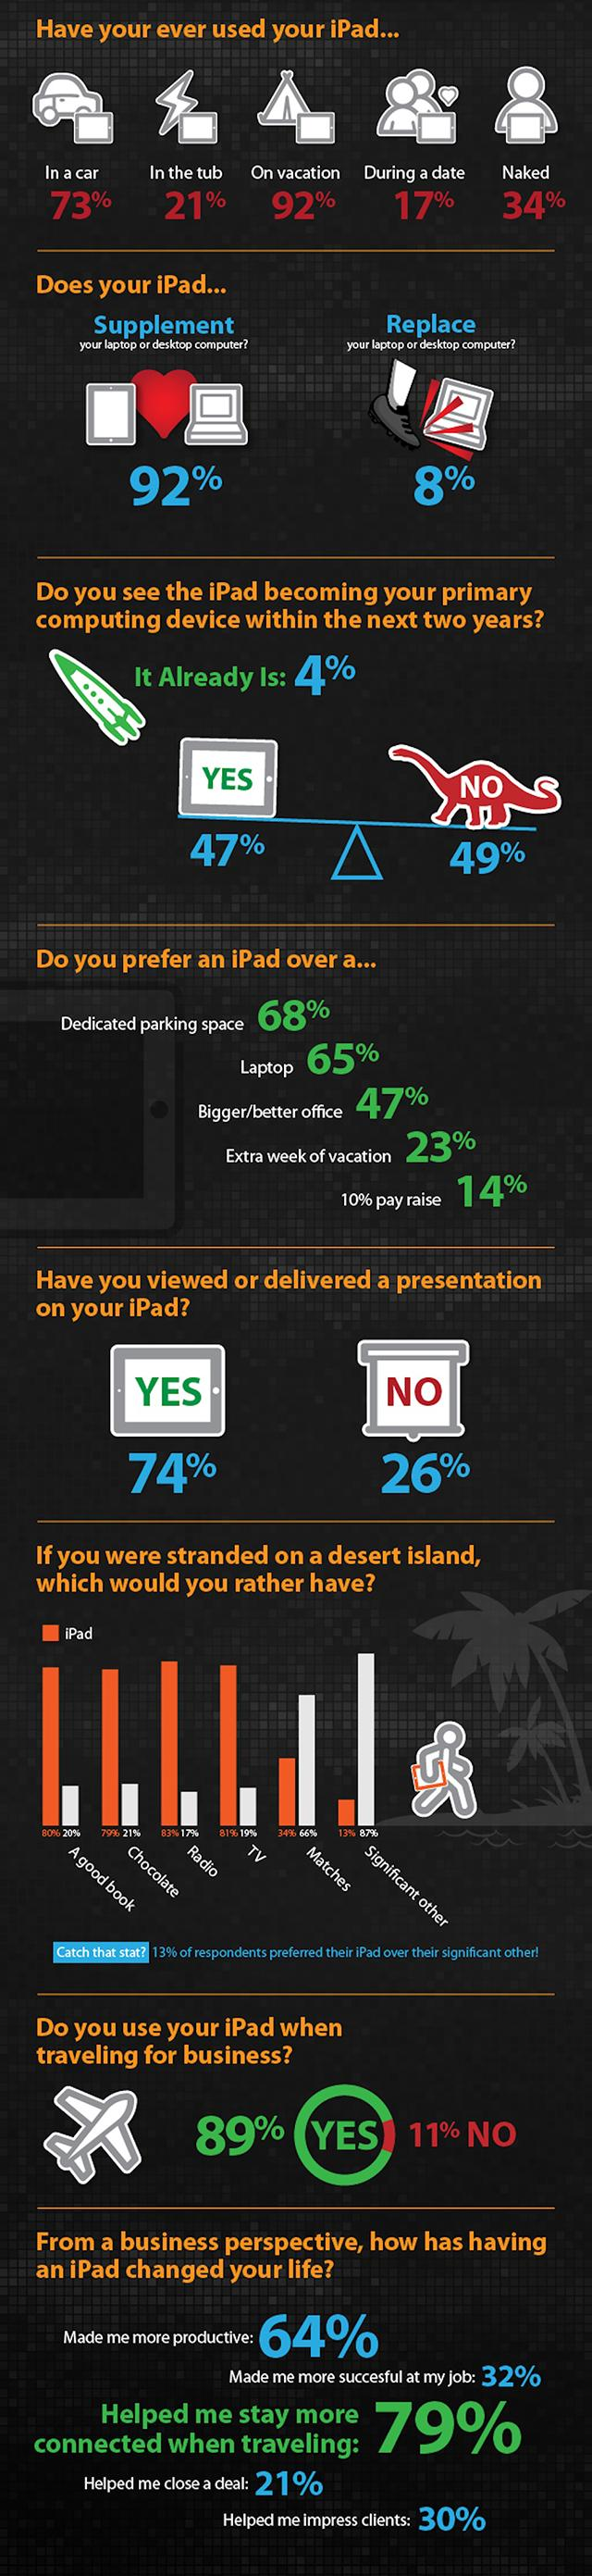 These Business Travelers Would Sacrifice a Lot For Their iPads [INFOGRAPHIC]